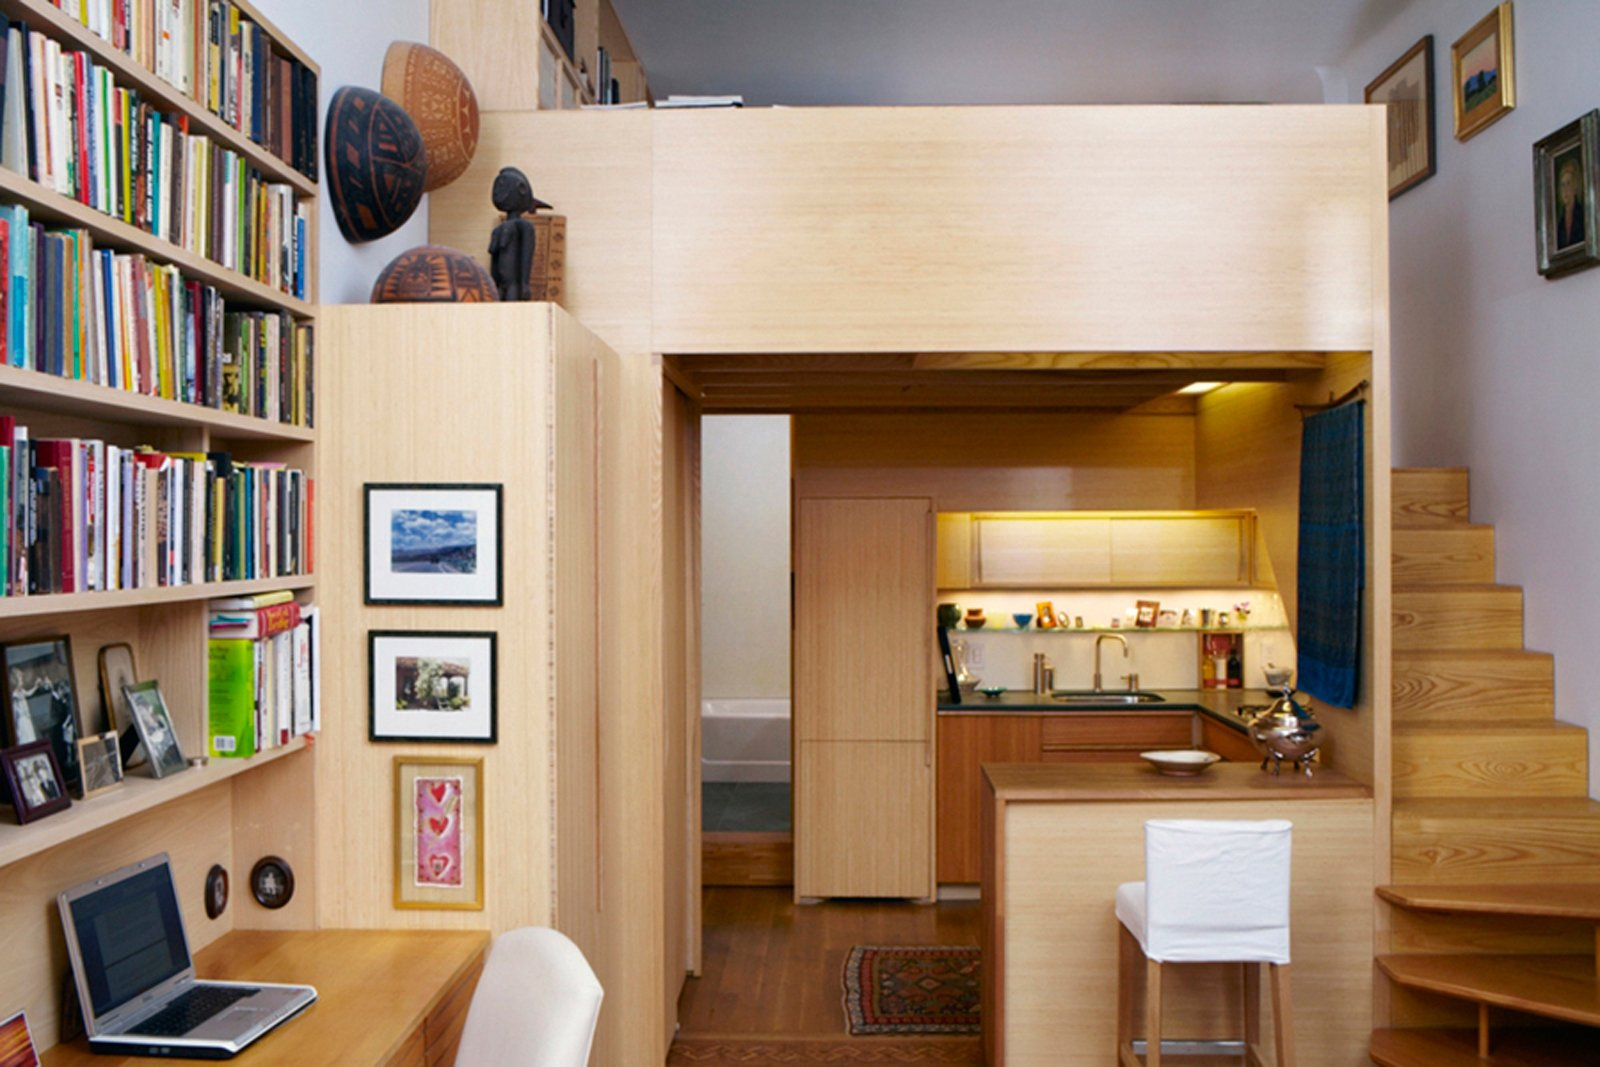 Faced with the challenge of a diminutive New York apartment in desperate need of a refresh, architect Tim Seggerman went straight to his toolbox to craft a Nakashima-inspired interior. Photo by David Engelhardt.